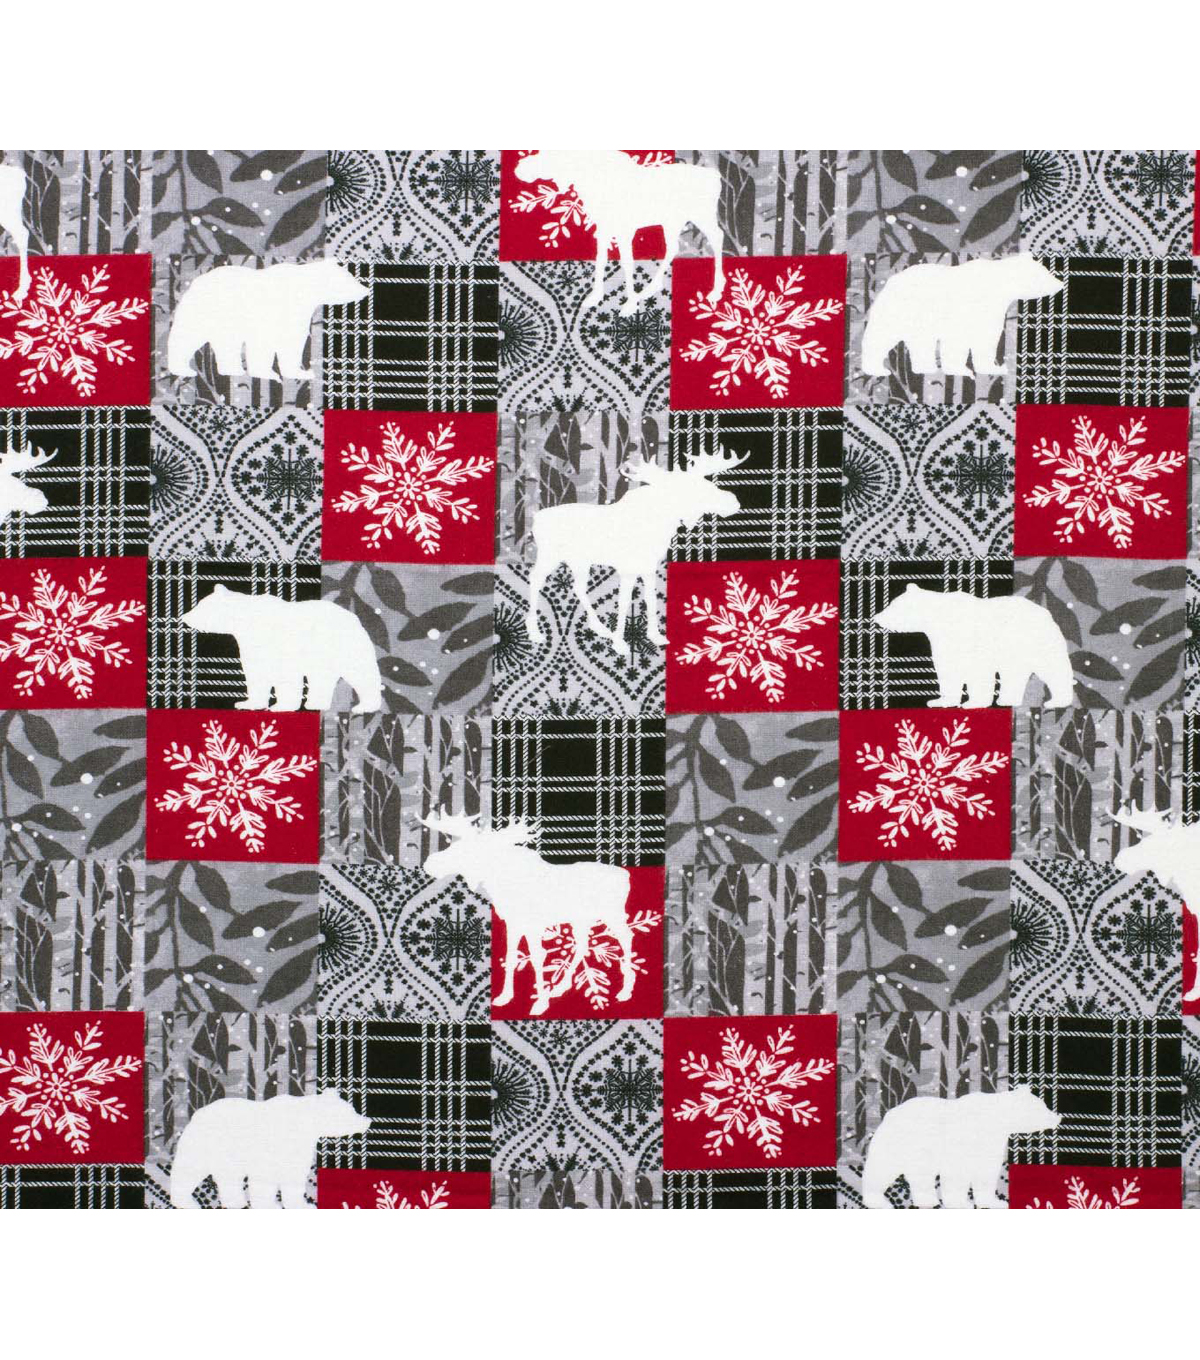 Super Snuggle Flannel Fabric-Bear Moose Black Patchwork